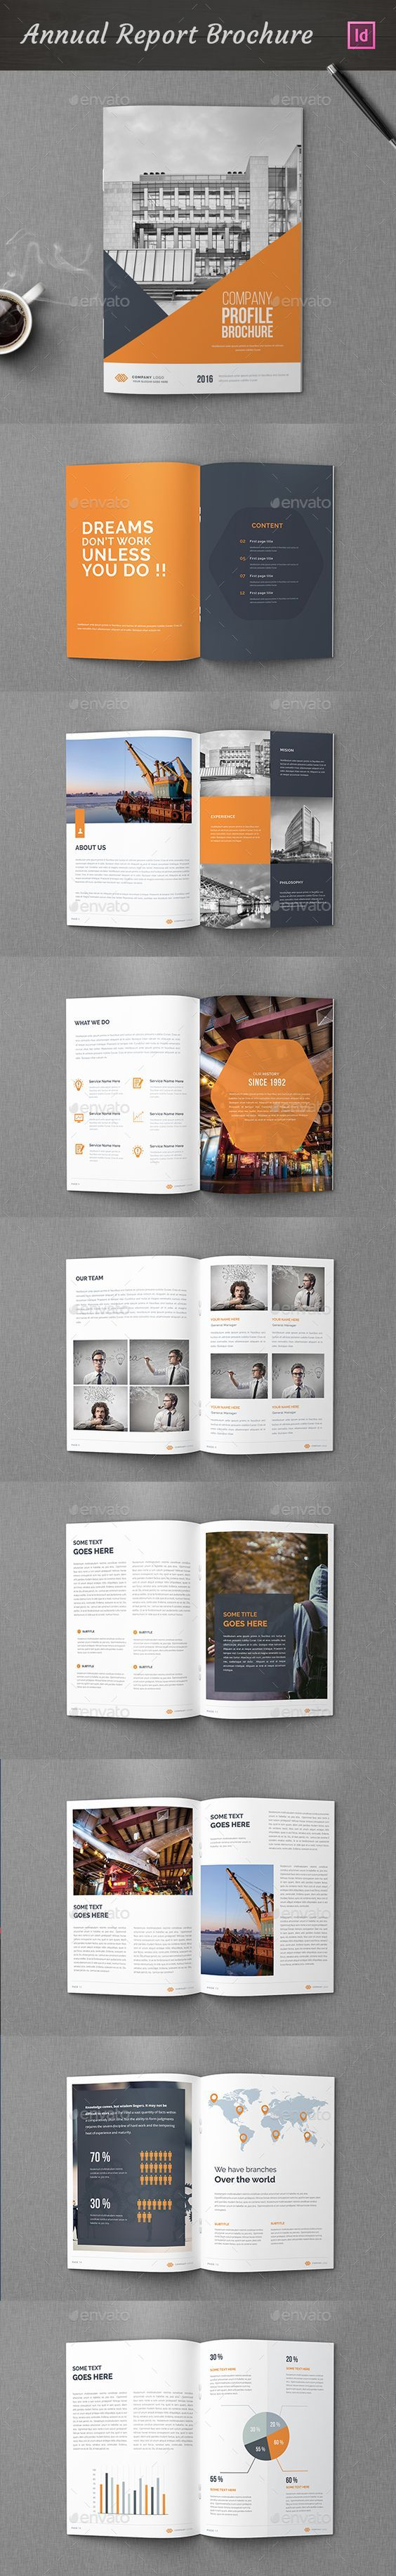 Annual Report Brochure Template InDesign INDD Download